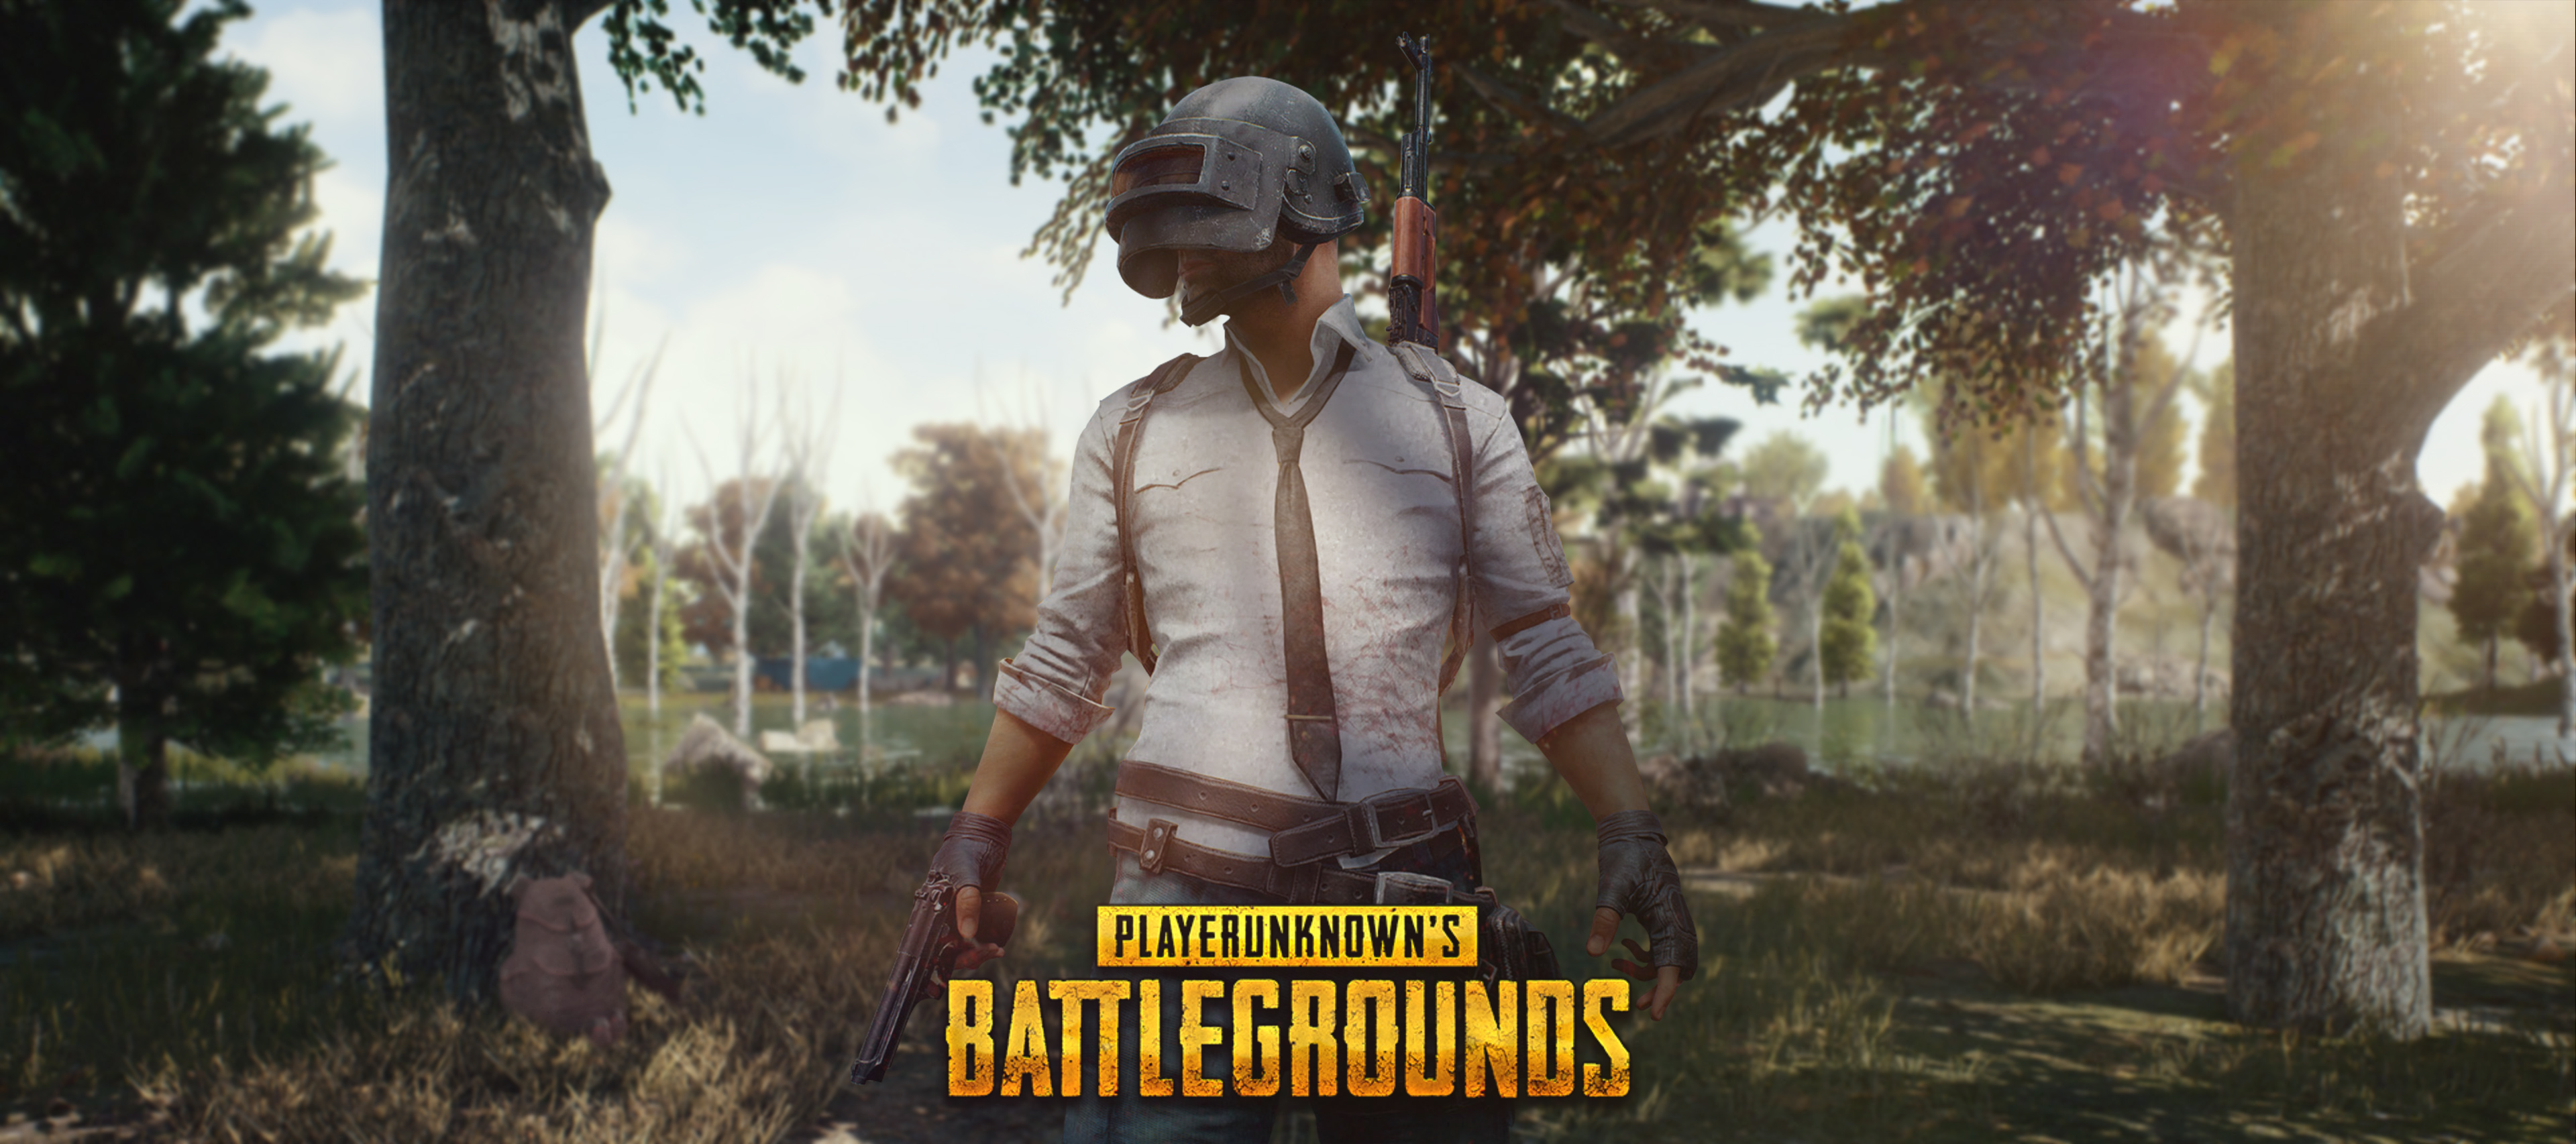 Pubg Mobile Helmet Guy Hd Games 4k Wallpapers Images Backgrounds